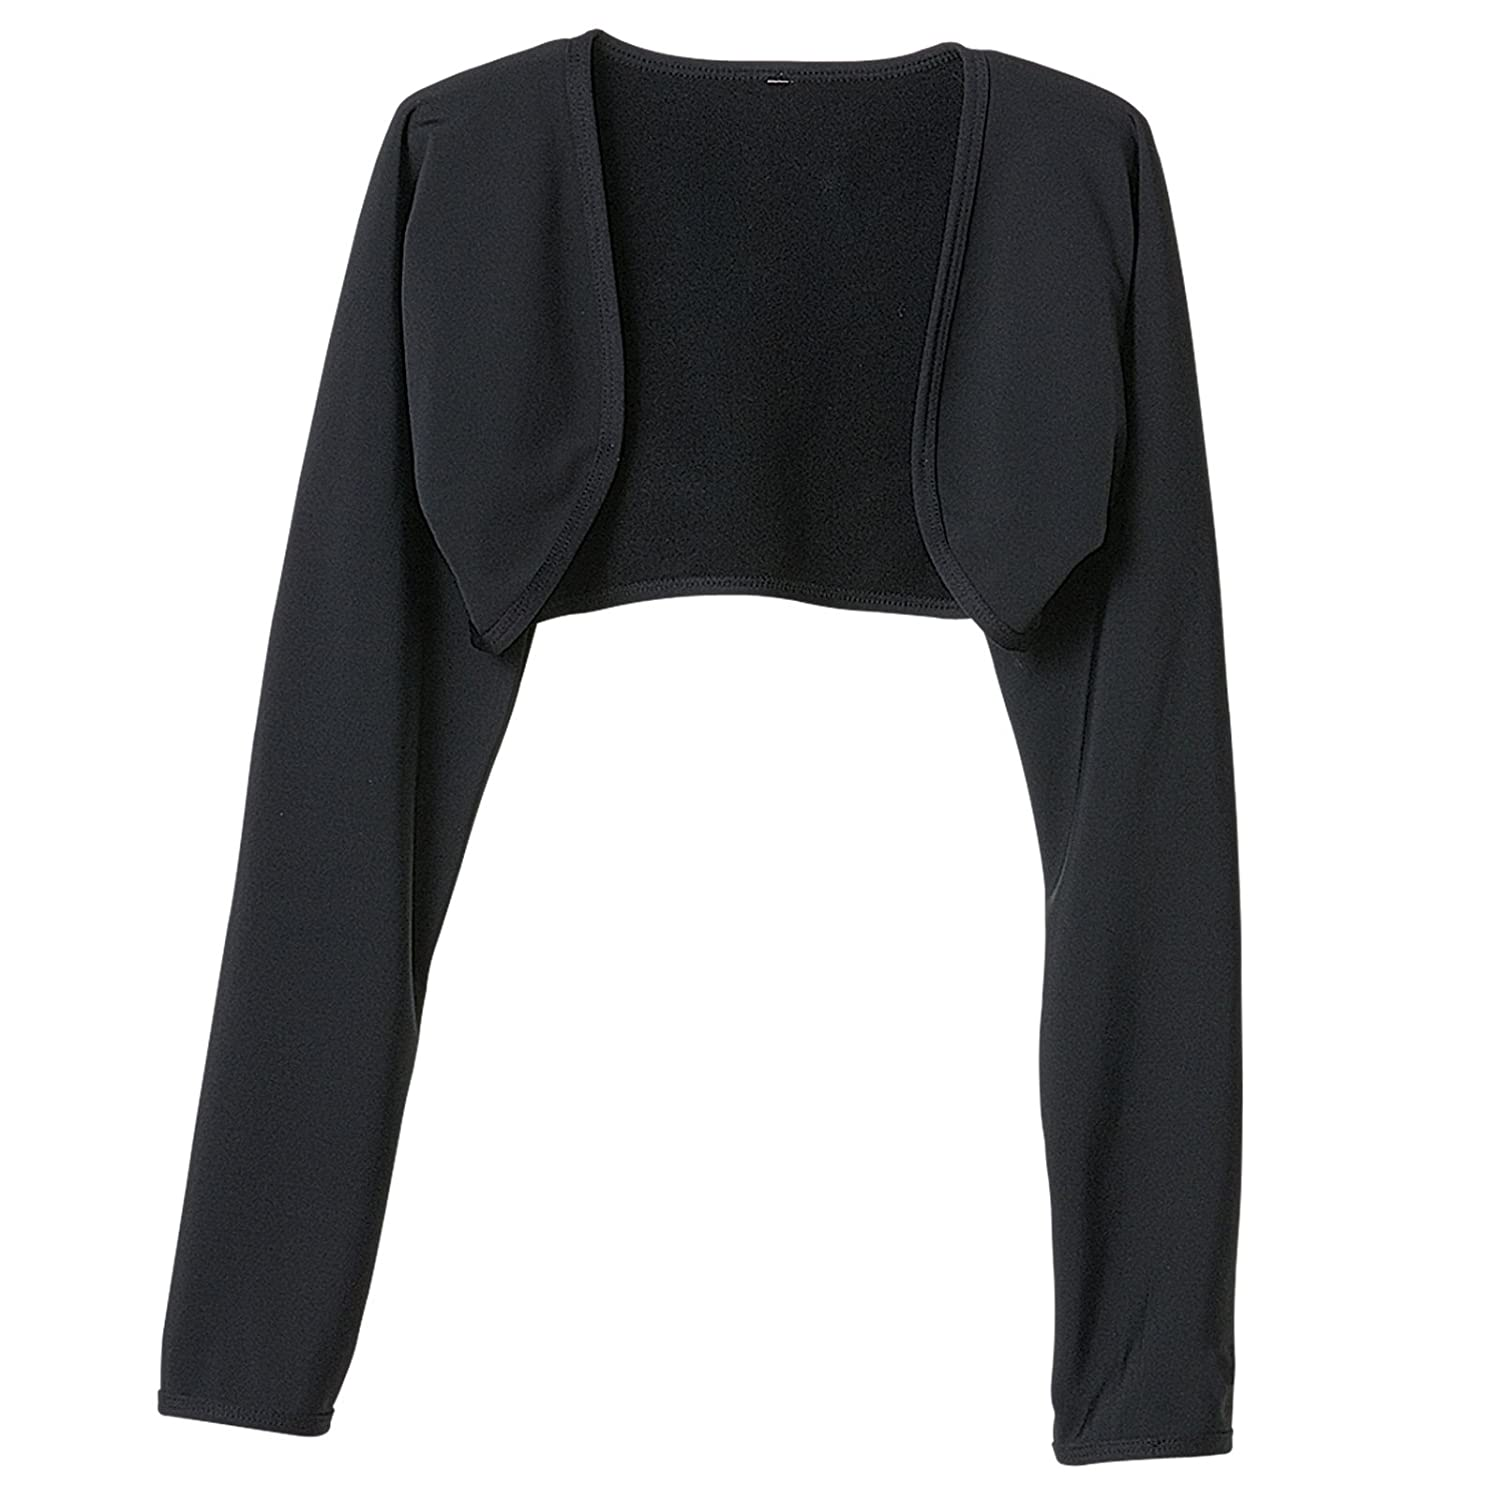 Terry Women's Light Bolero for Cycling - for Warm Up or 50+ UPF Sun Protection Cooling Arm Shawl with Long Sleeves